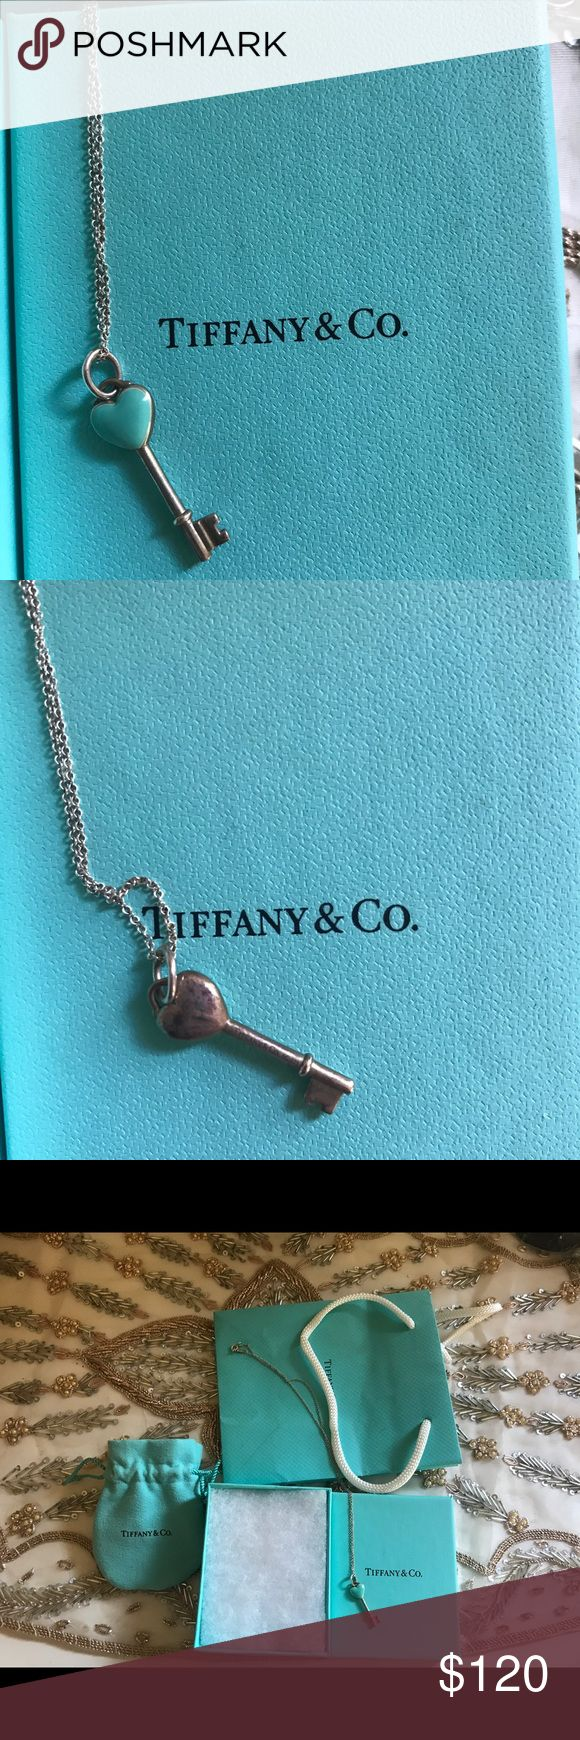 Tiffany Heart Necklace 💙 Gorgeous tiffanys necklace. Has been sitting in my jewelry drawer, in great condition. Only place you can see visible wear is on the back of the heart, shown in the second photo. The blue is still vibrant and beautiful. Excellent condition. Comes with pouch, box and bag. Tiffany & Co. Jewelry Necklaces